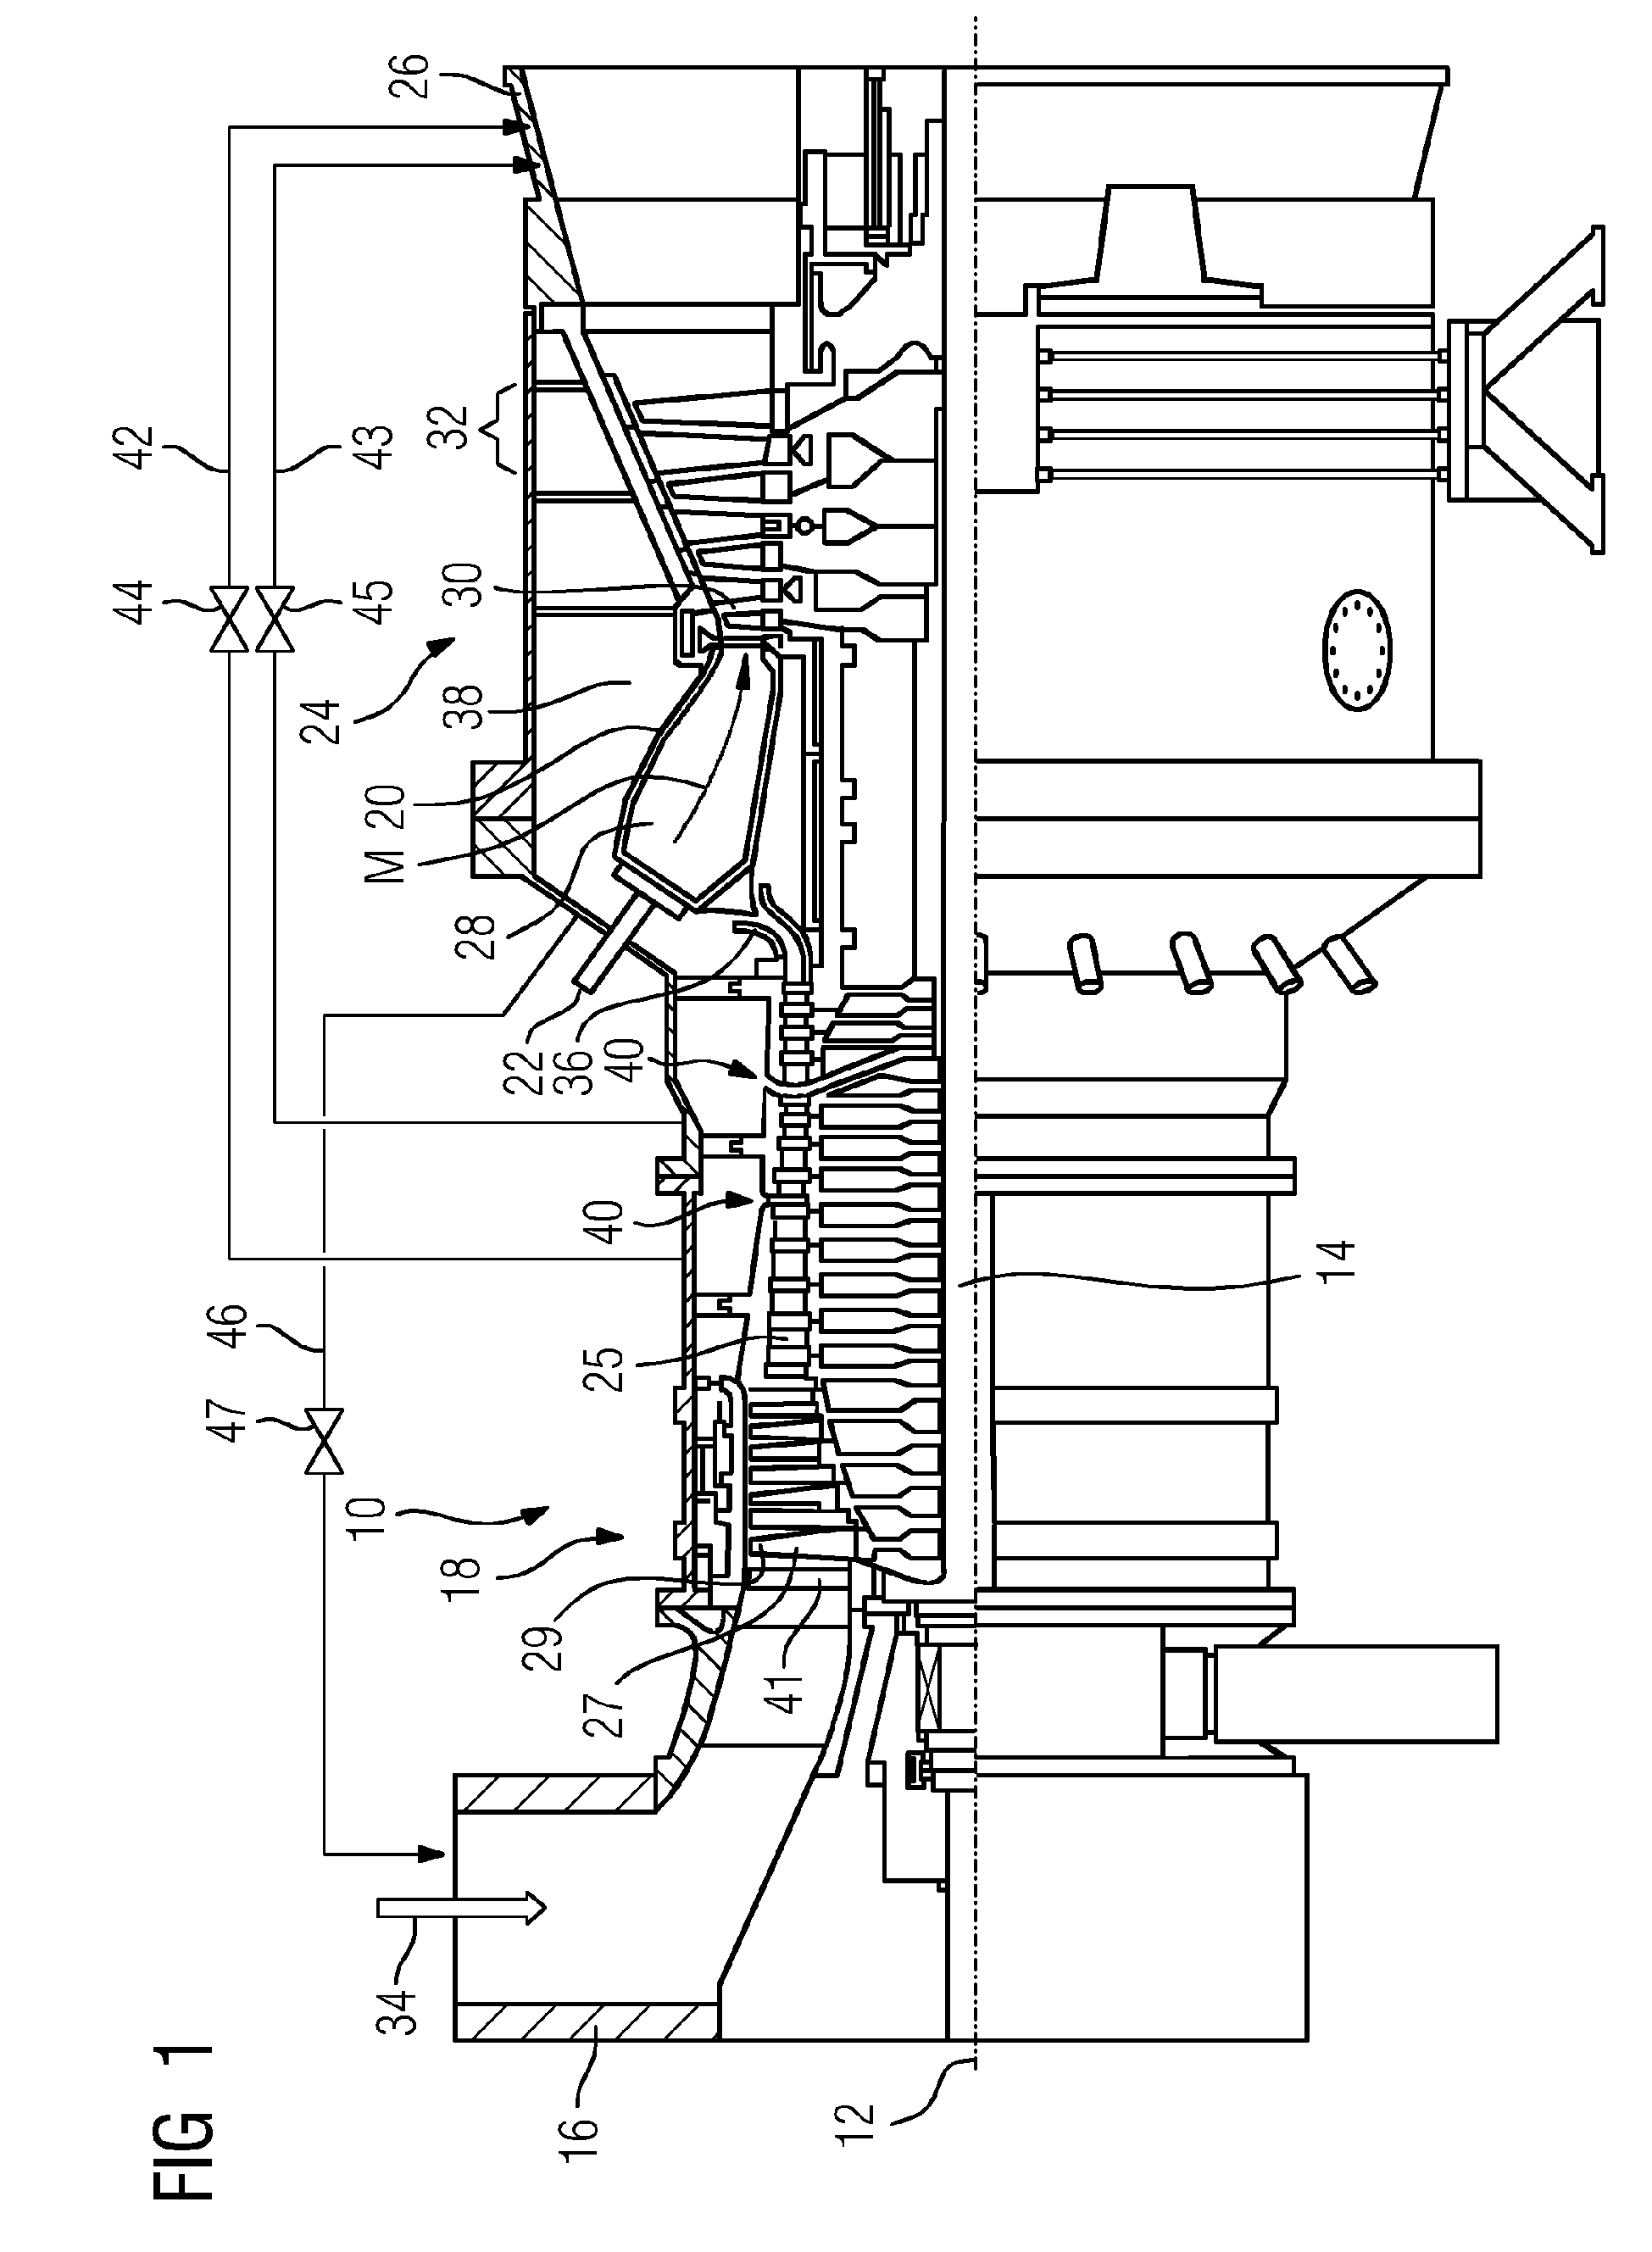 Patent EP A1 Method for accelerating the rotor of a